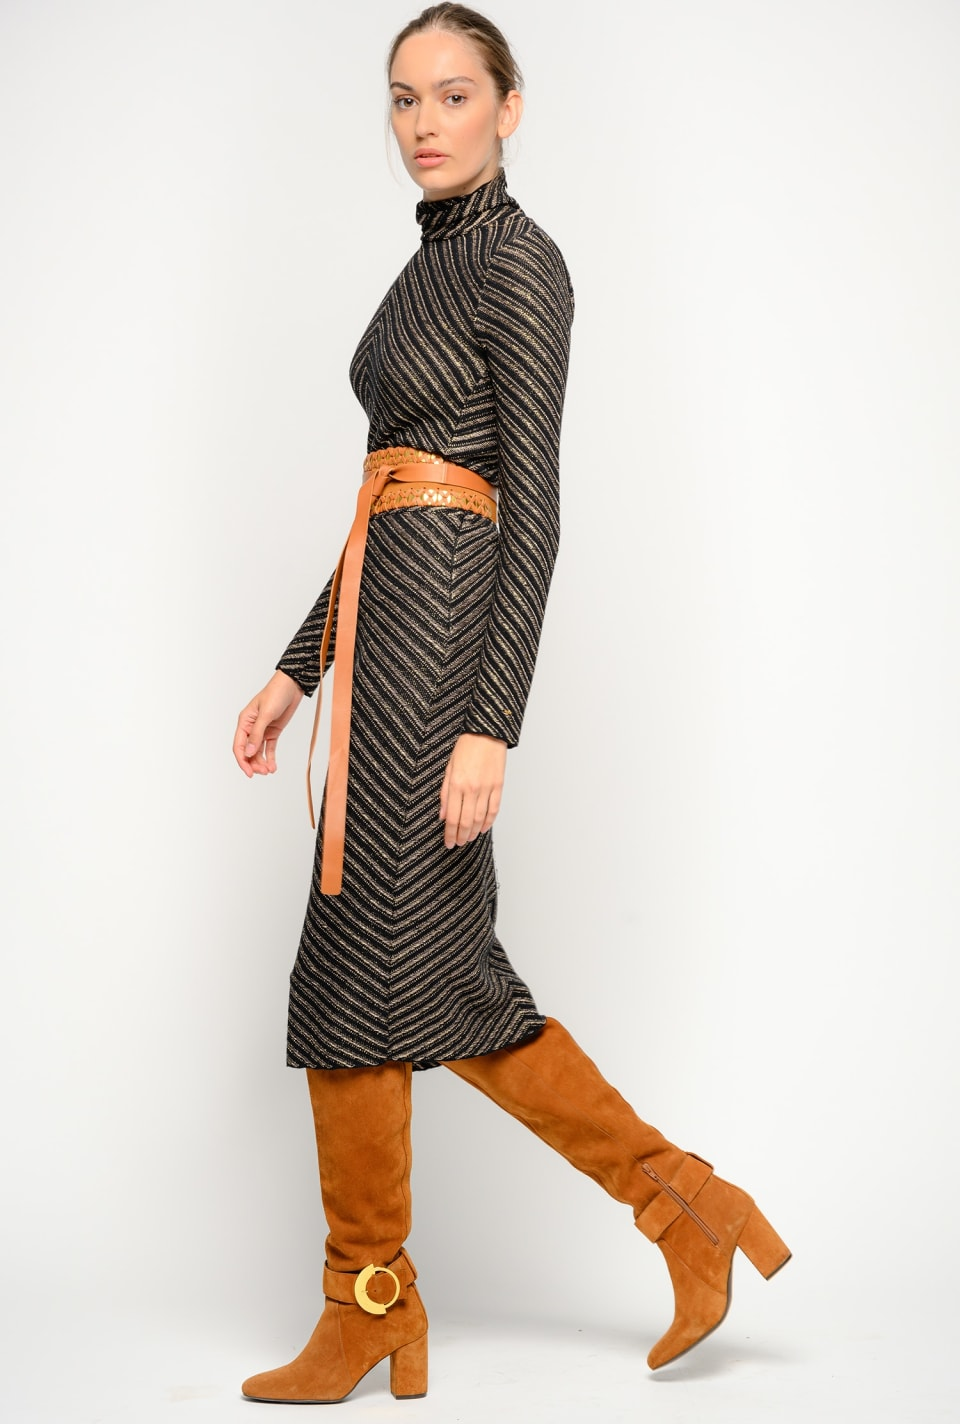 Mid-calf skirt in chevron jacquard - Pinko